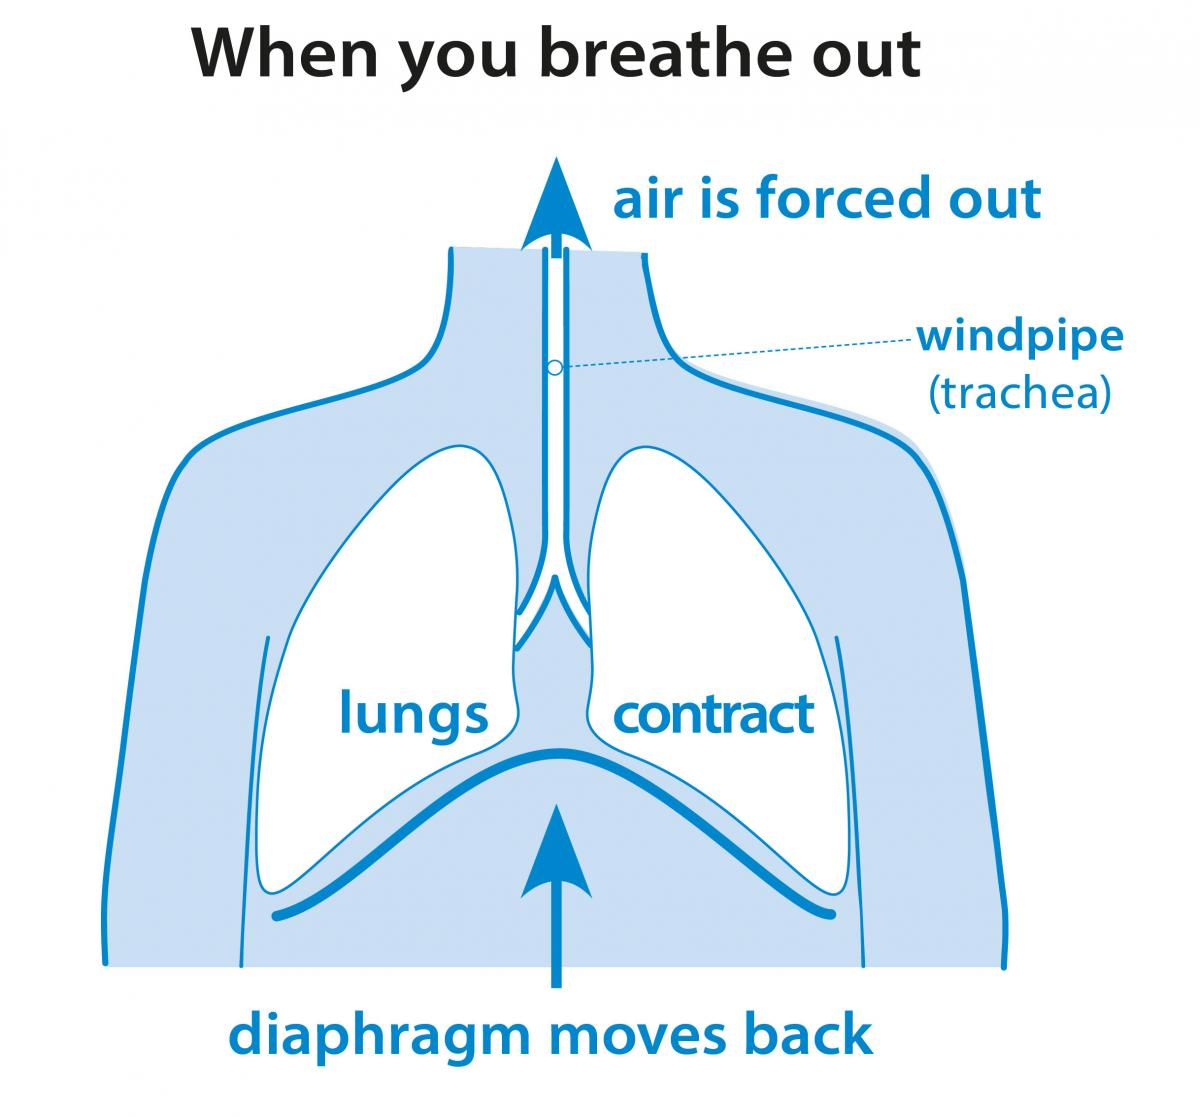 how do you breathe?